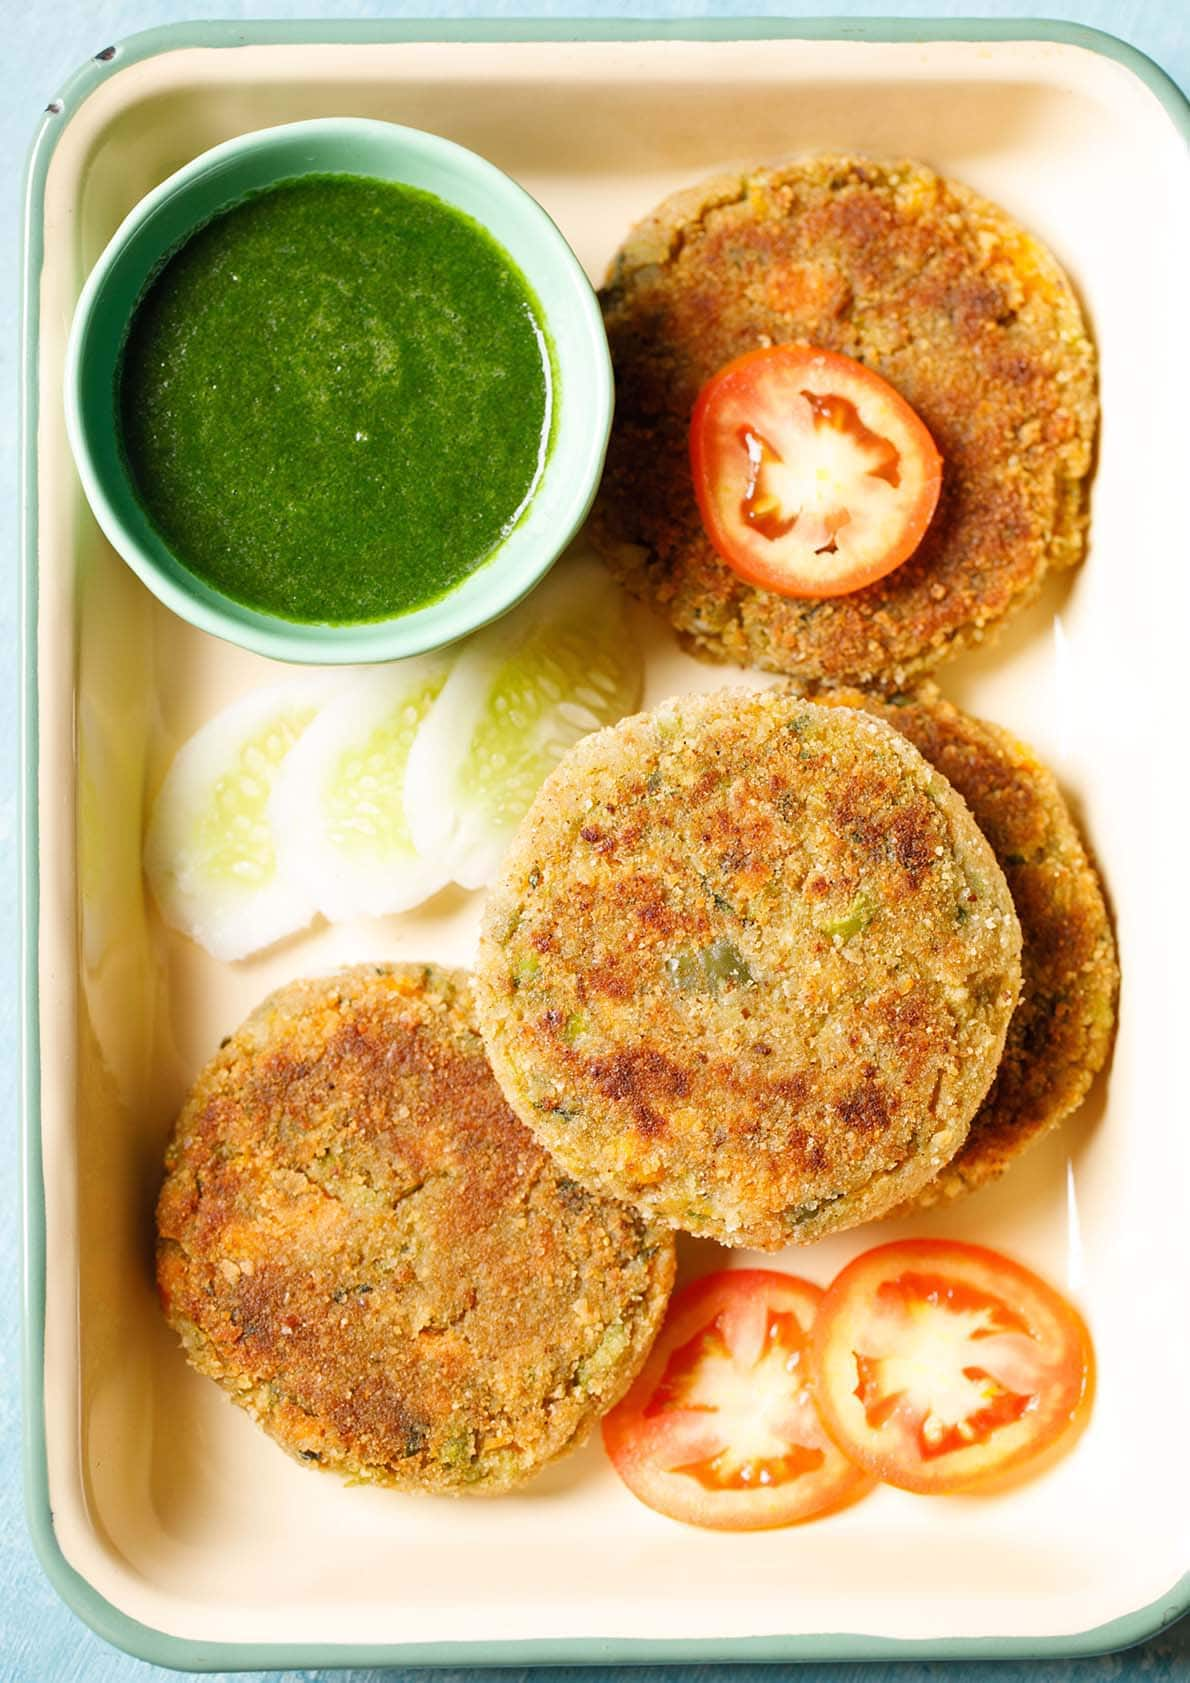 veg cutlet placed on a tray with a few slices of tomatoes, cucumber and a light green bowl filled with green chutney